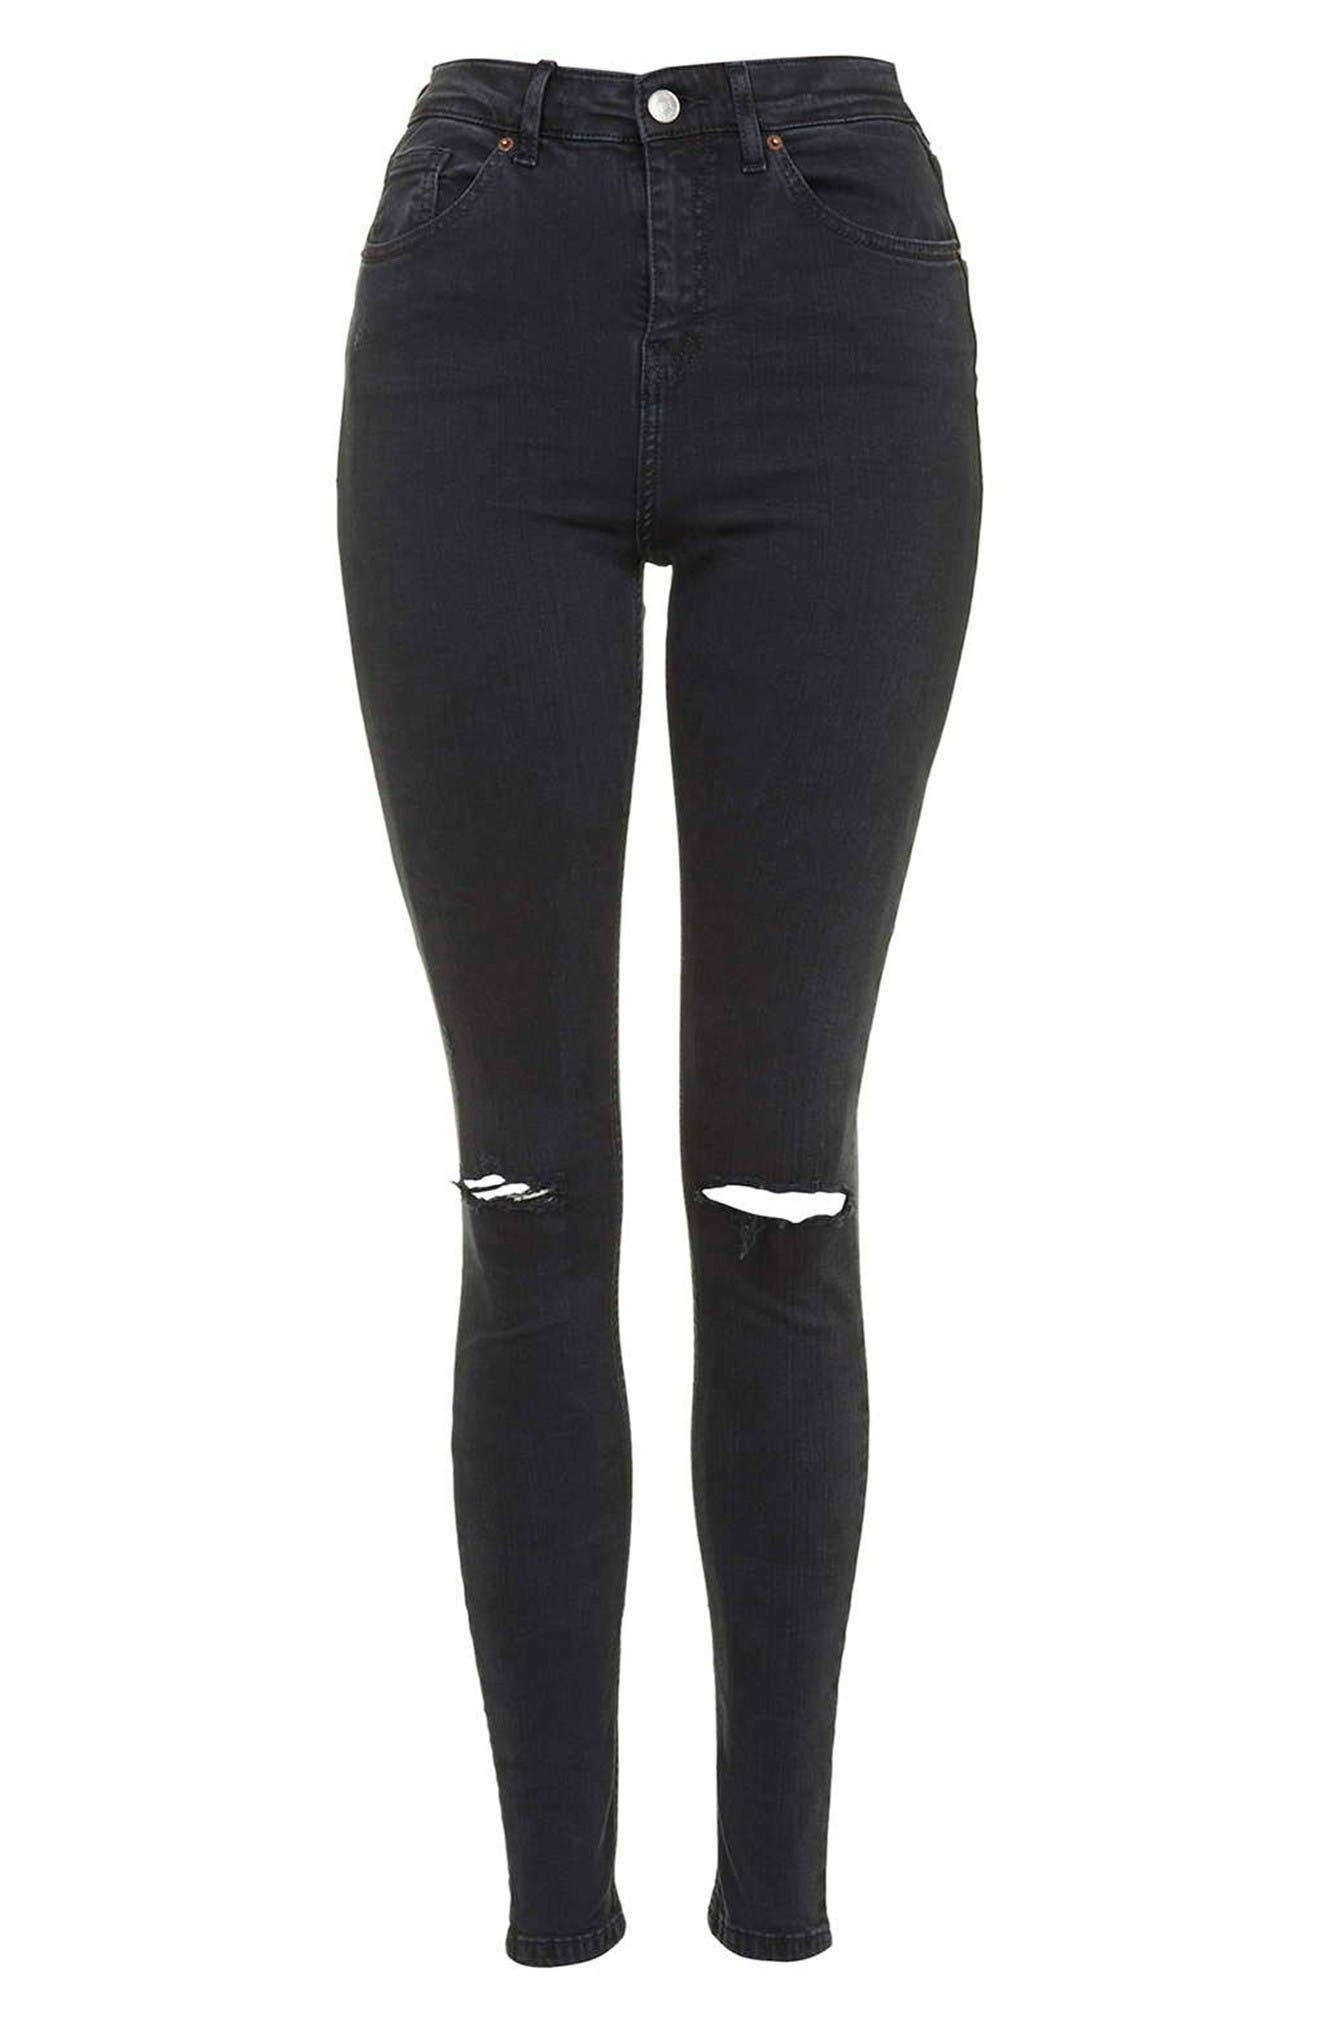 TOPSHOP,                             Moto 'Jamie' Ripped Skinny Jeans,                             Alternate thumbnail 6, color,                             001